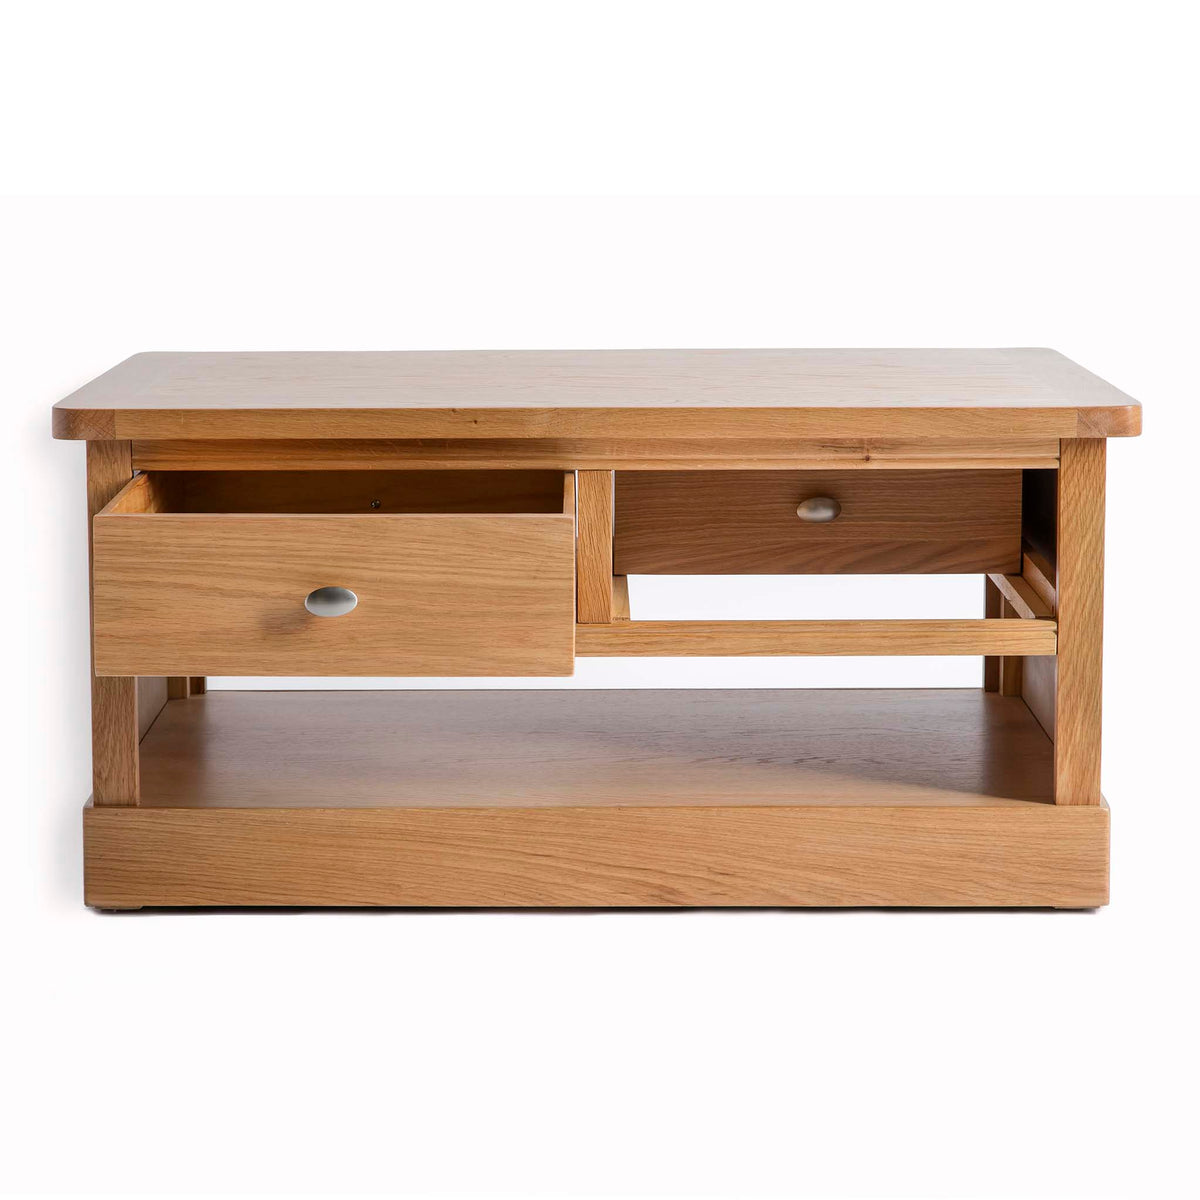 Hampshire Oak Coffee Table by Roseland Furniture - Front view with opposite drawers open